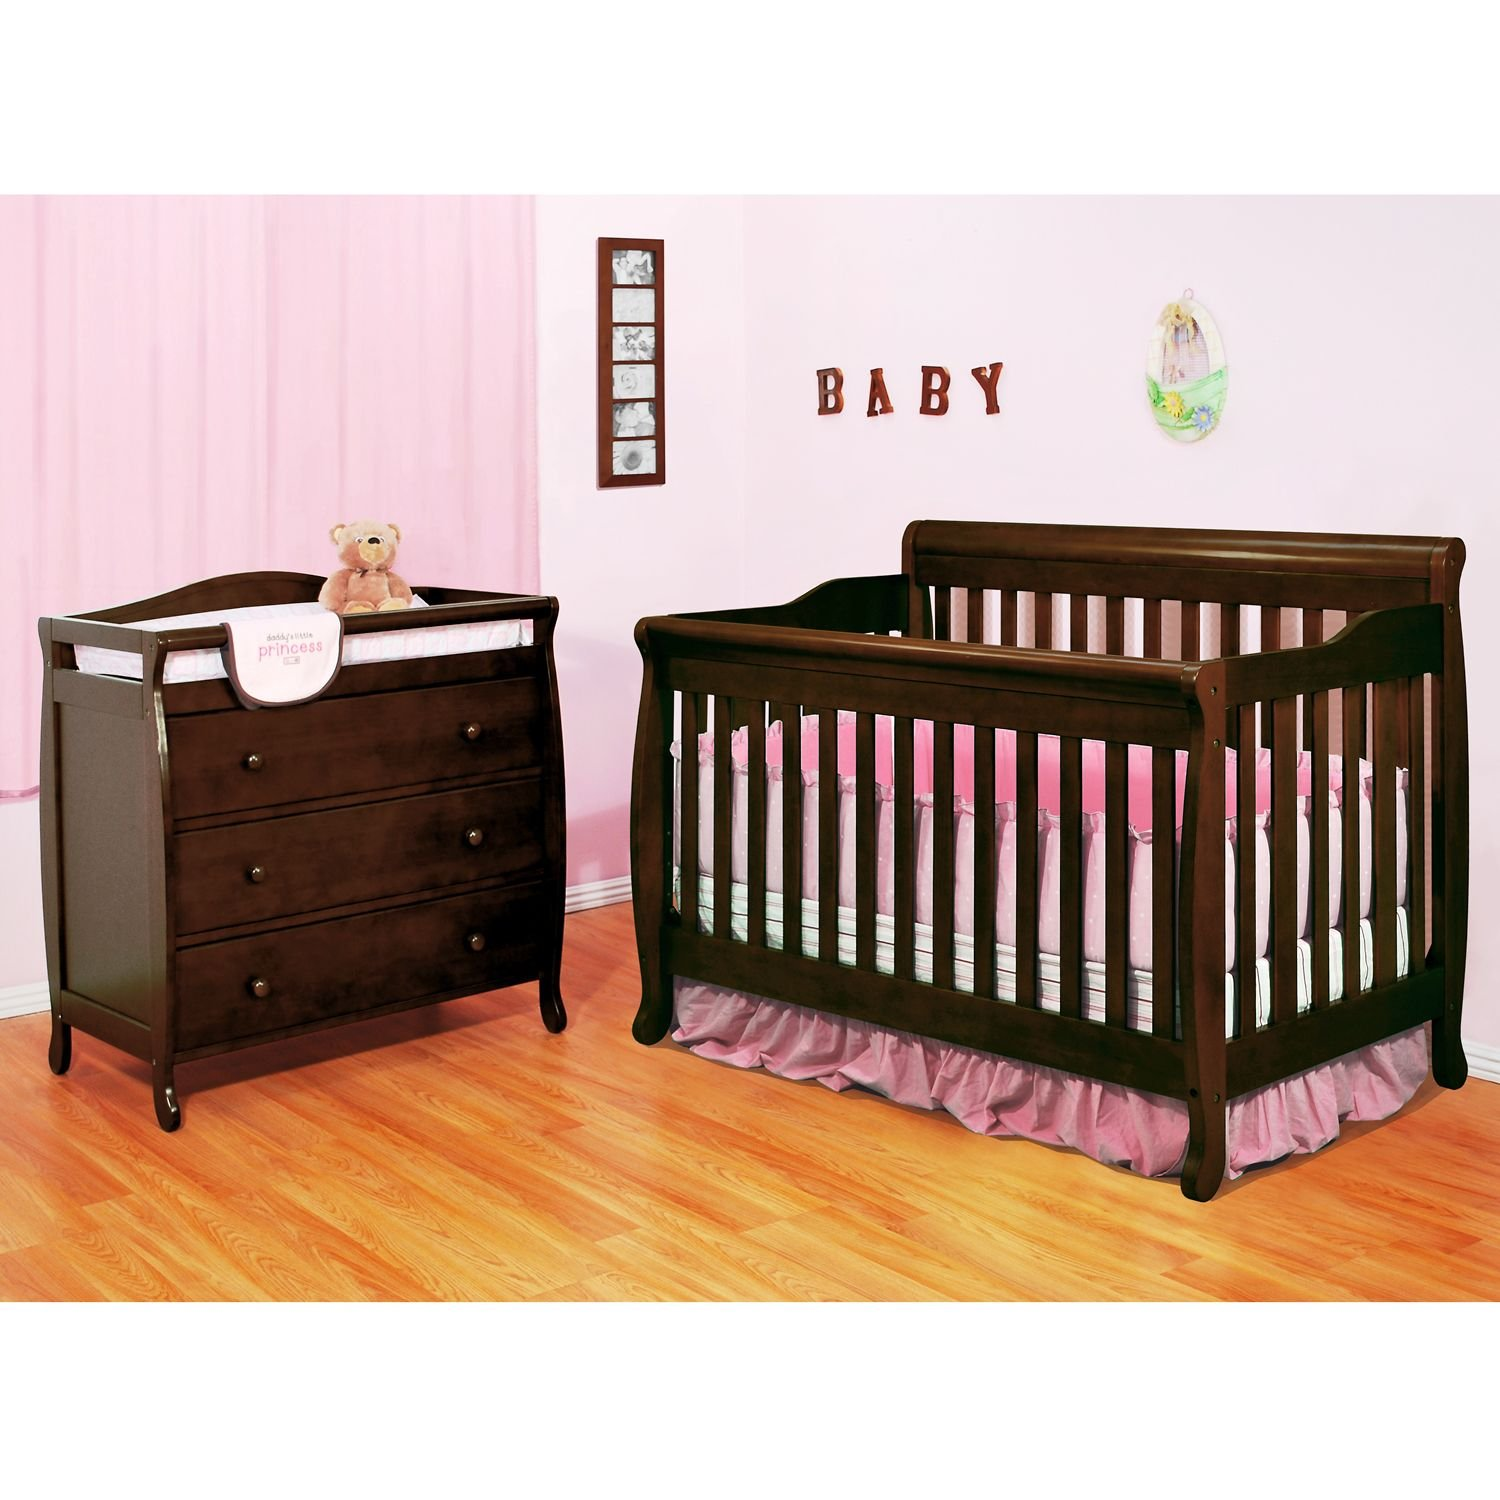 Amazon.com : AFG Alice 3-in-1 Crib and Grace 3 Drawer Changer ...